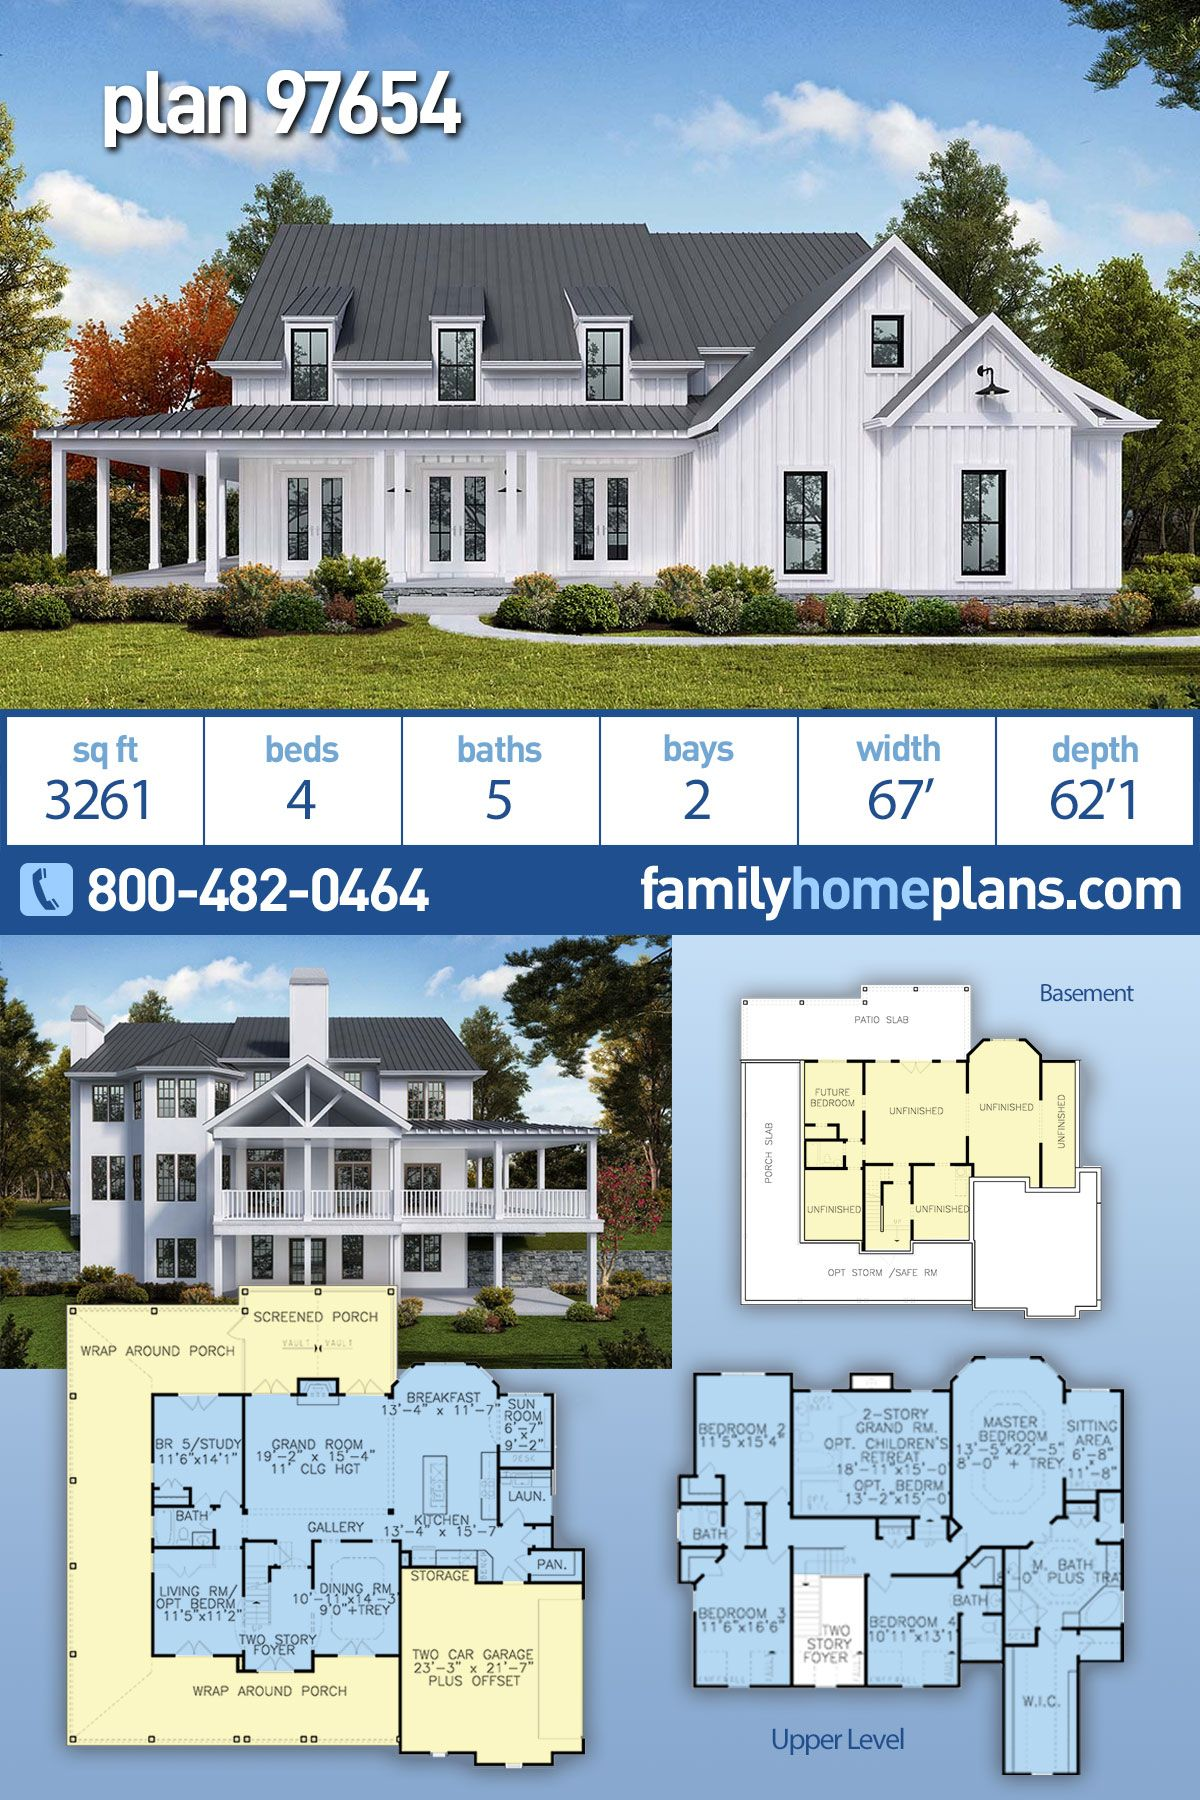 Southern Style House Plan 97654 With 4 Bed 5 Bath 2 Car Garage Farmhouse Plans House Plans Farmhouse House Plans